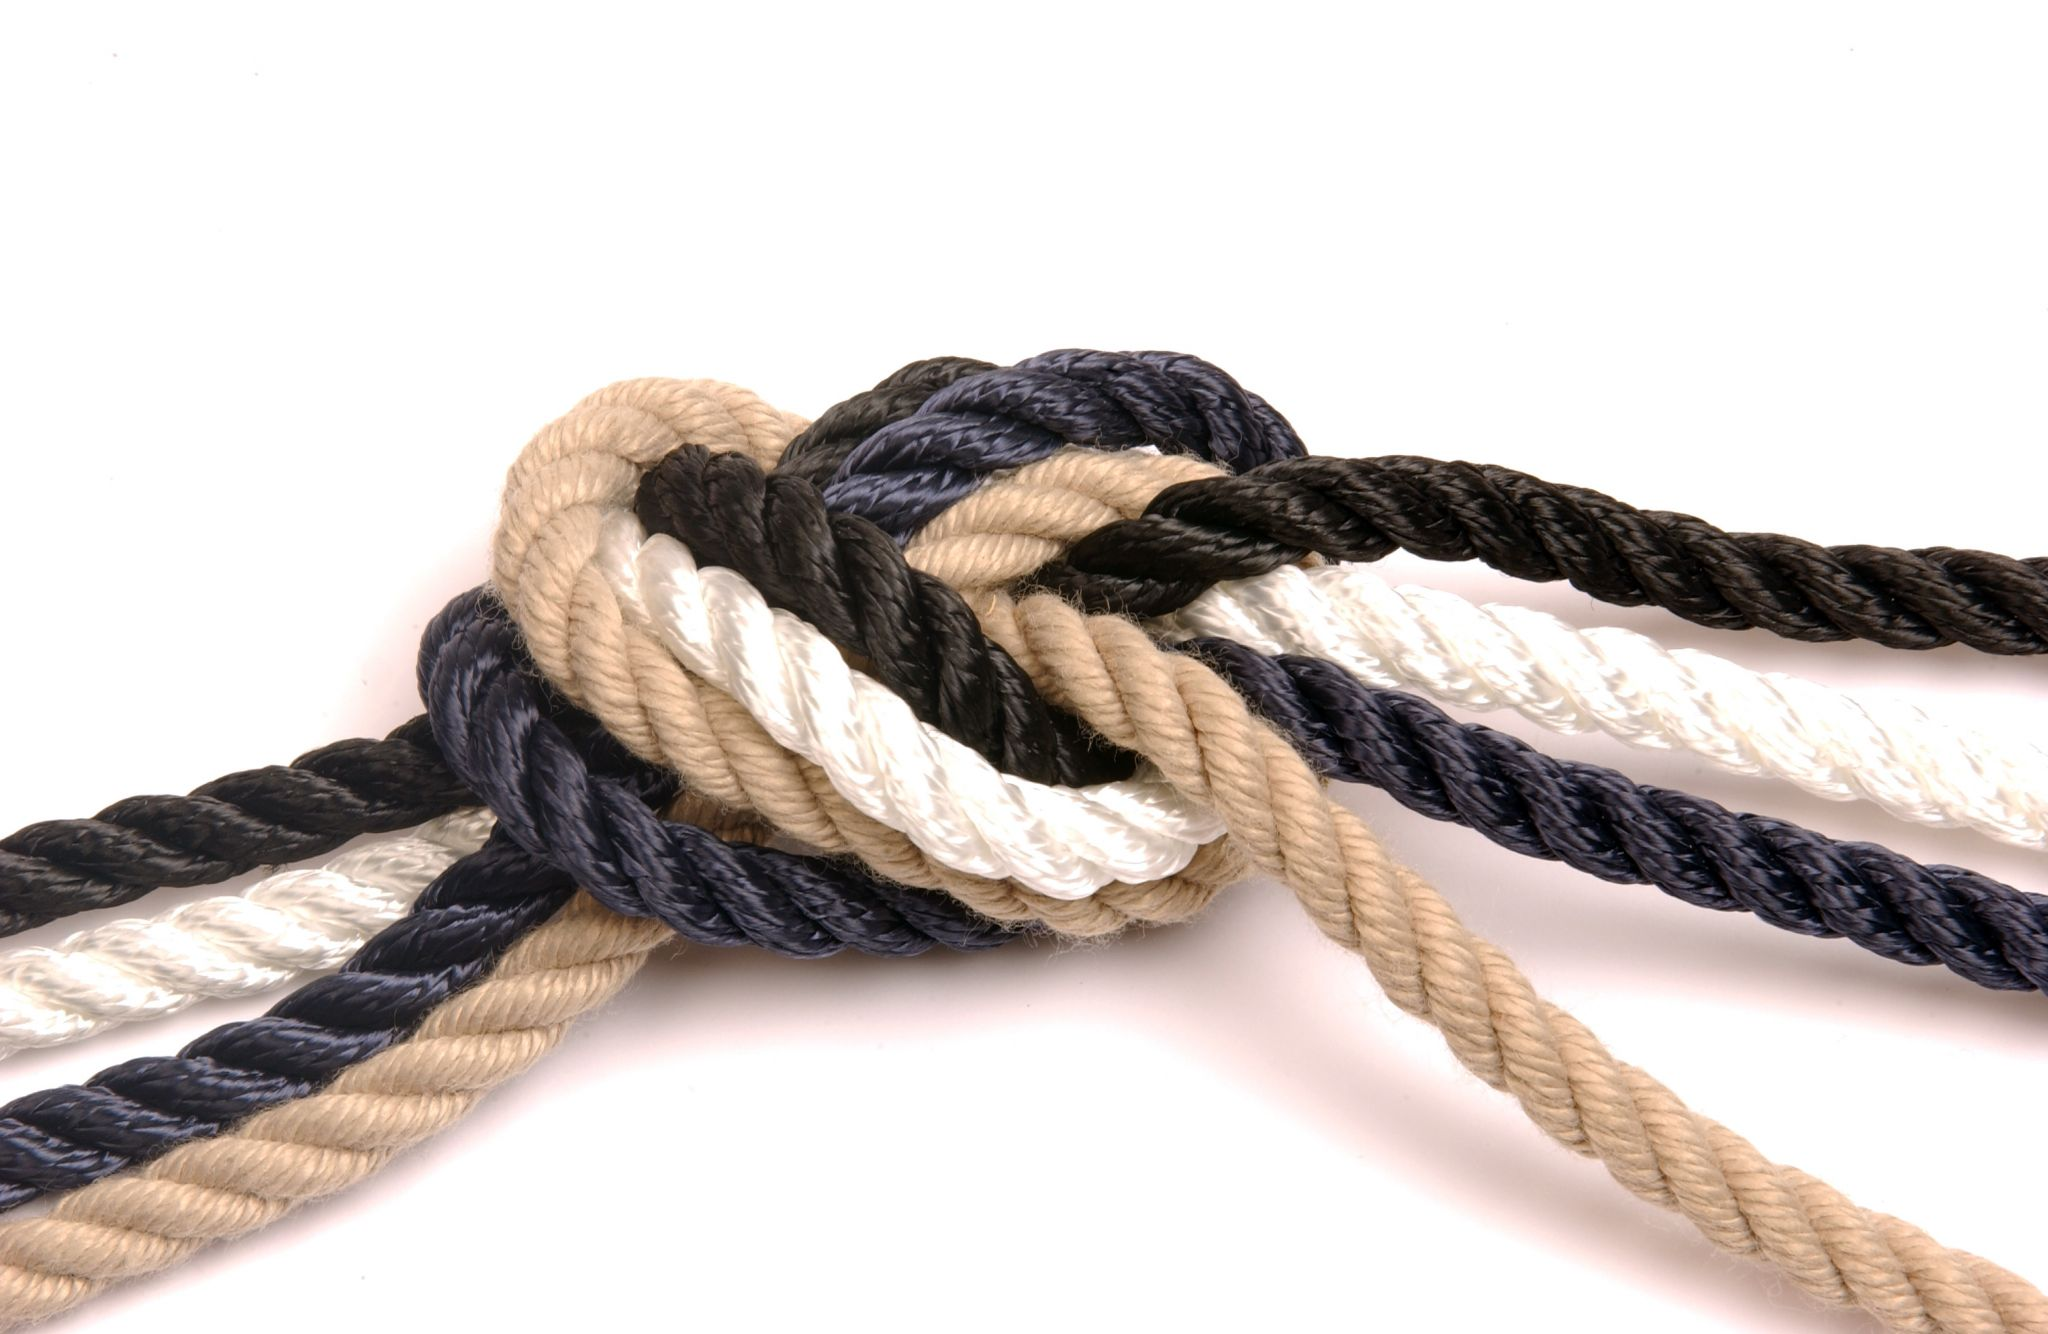 Navy Rope Lighters: 3